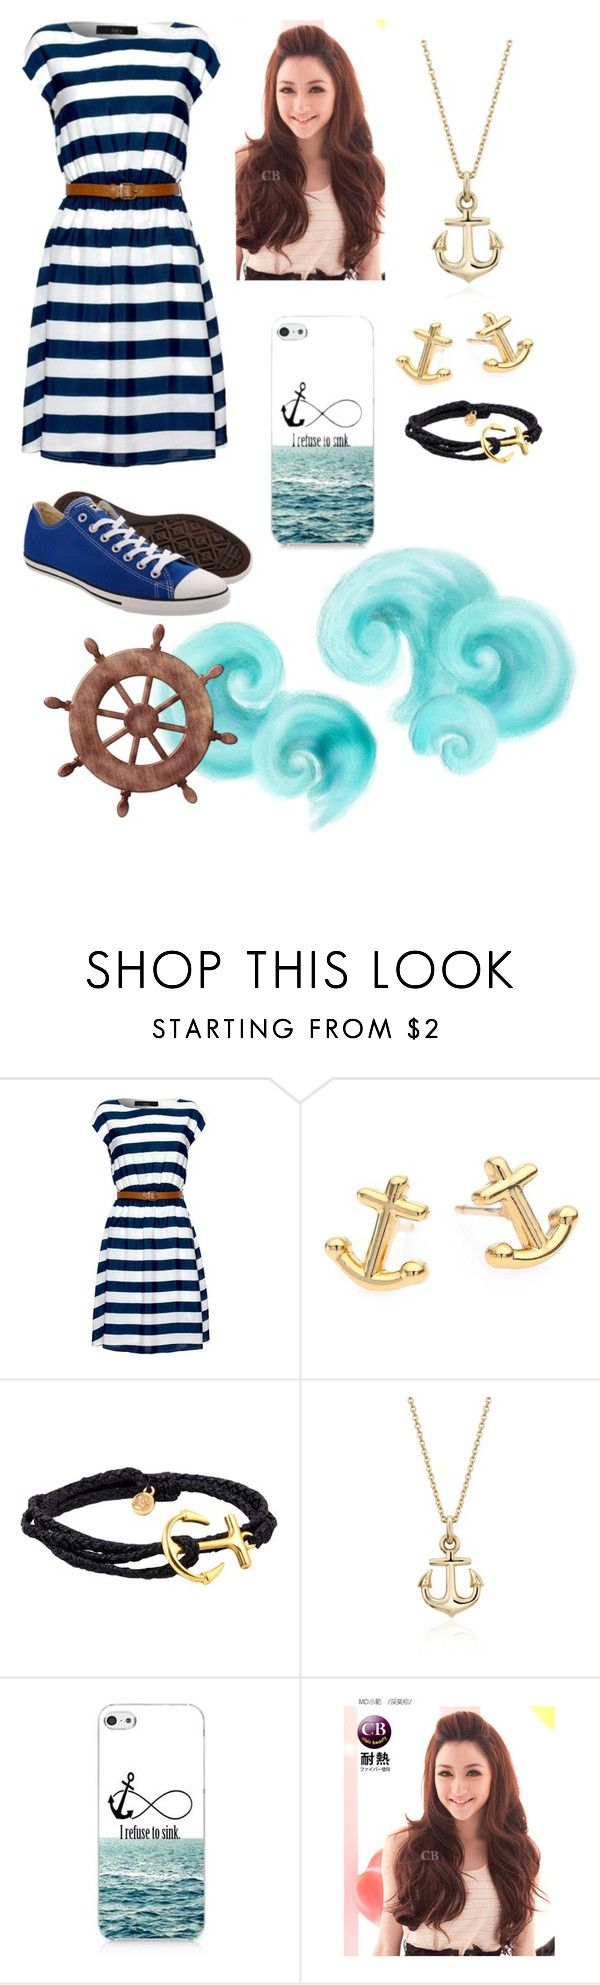 """""""In the marine"""" by zebralover-333 ❤ liked on Polyvore featuring Iska, Kate Spade, Pura Vida, Blue Nile, Retrò, Clair Beauty and Converse"""